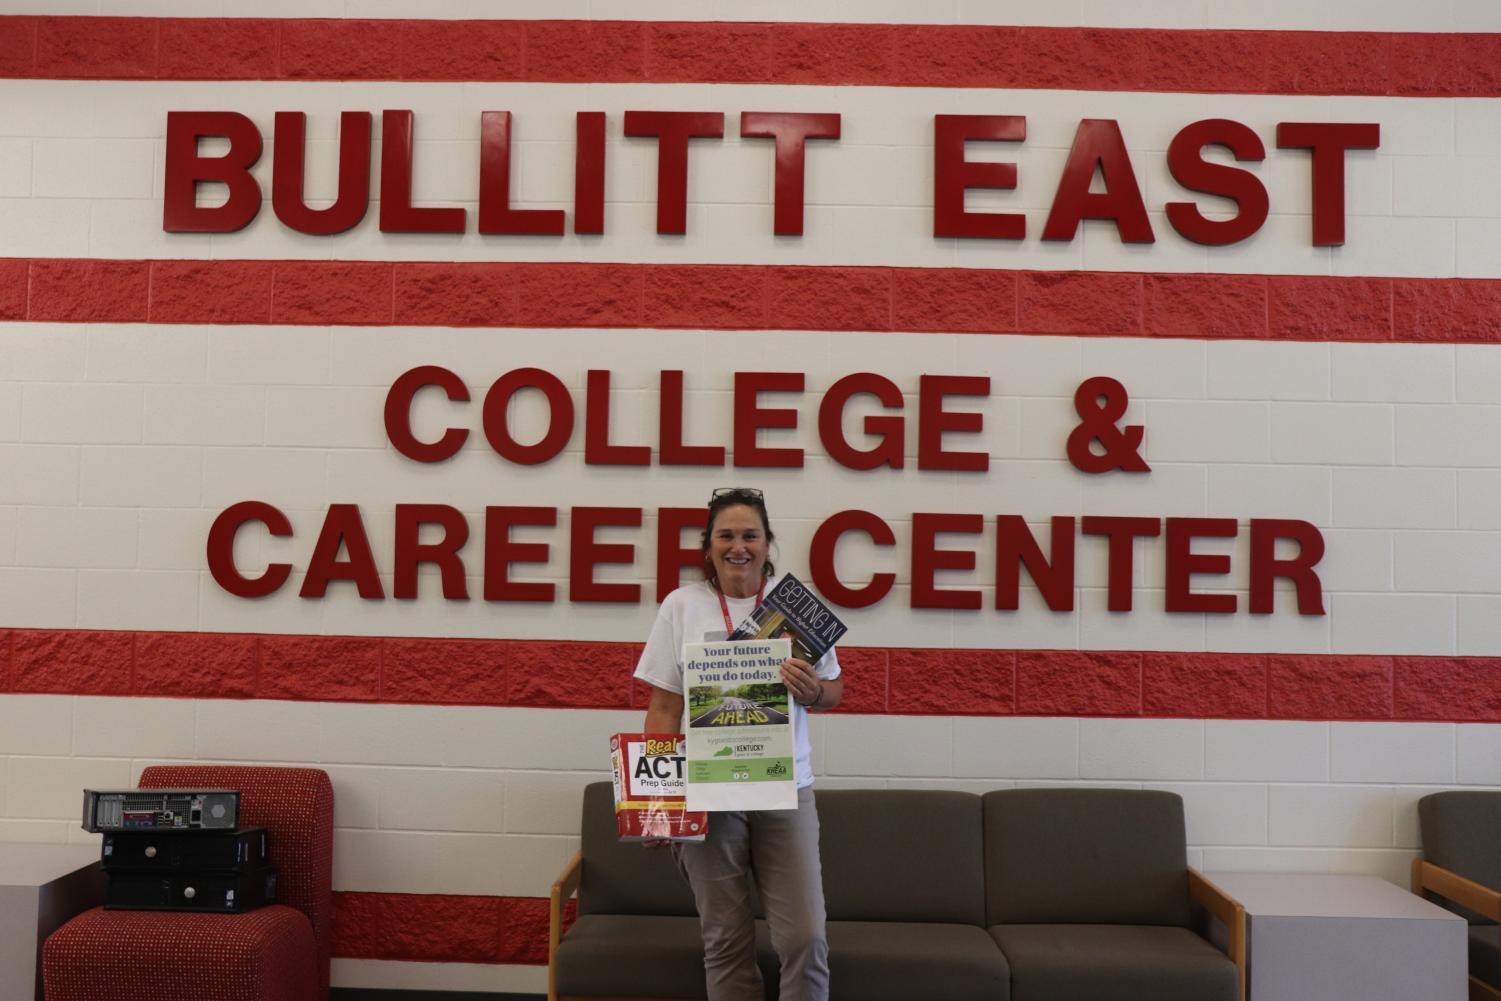 Here is Wendy McCutcheon, College and Career Readiness Director at Bullitt East, holding three helpful sources for students to become college- or career-ready or to explore their options regarding their college or career. This program aims to help students prepare for transitioning into whichever postsecondary education or career they choose, withstanding the new changes that have been made in Kentucky for the college and career readiness criteria.